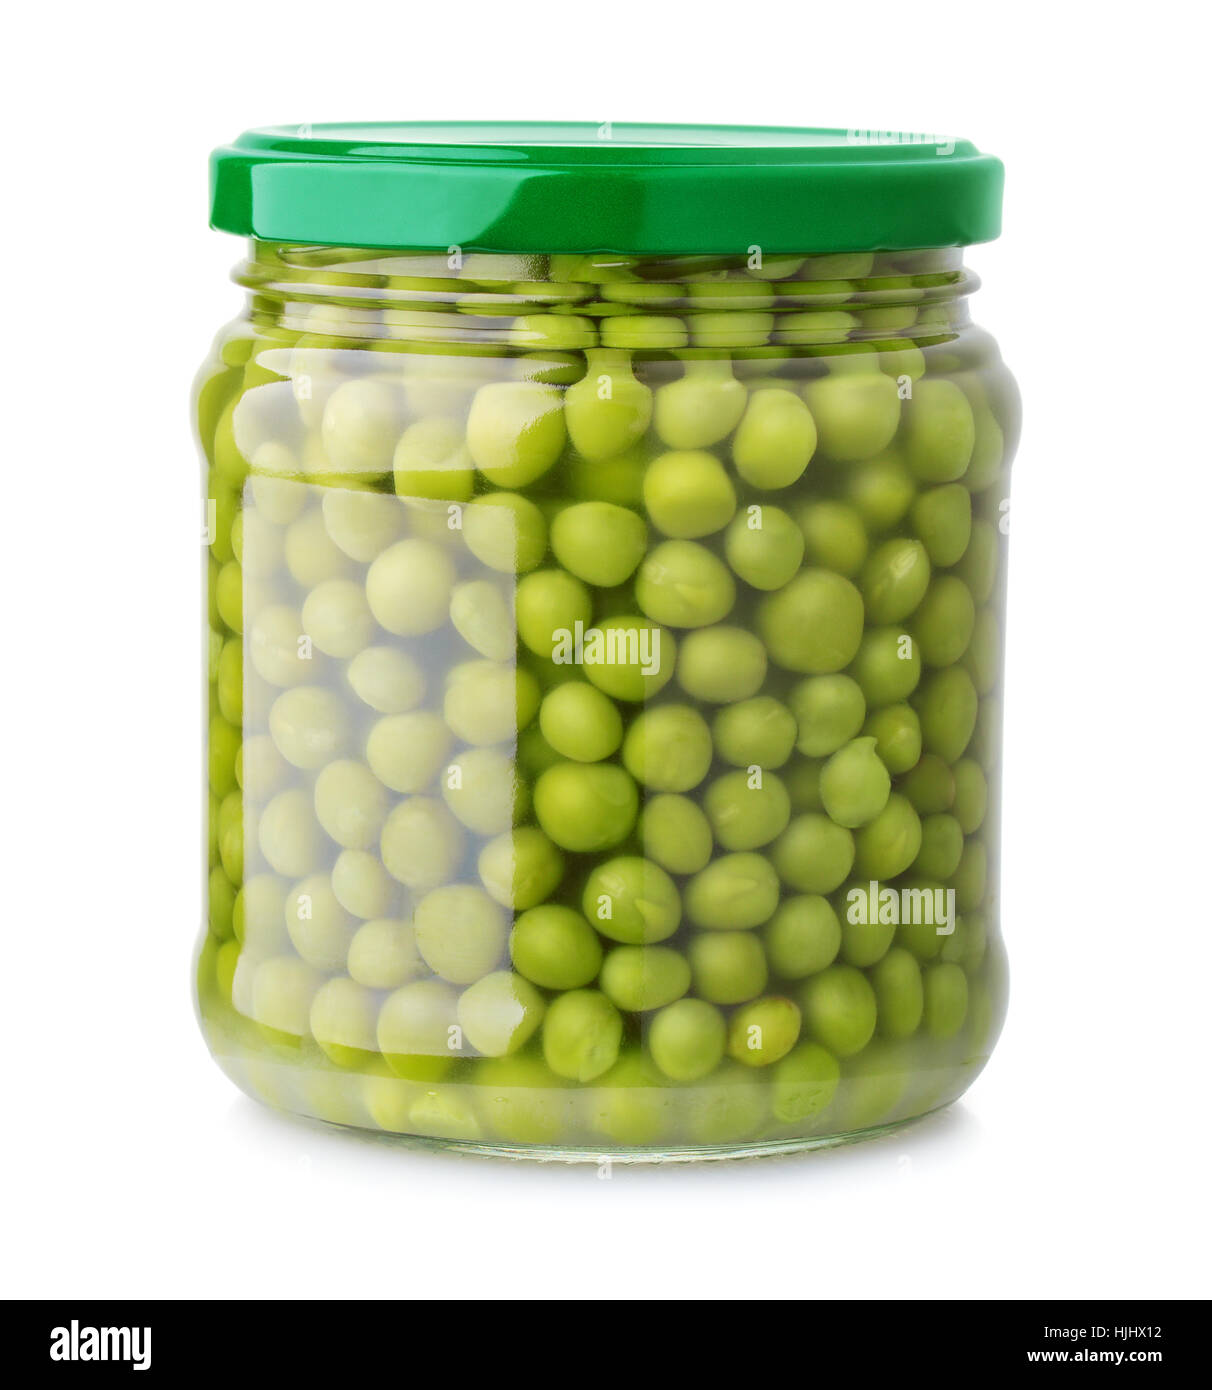 Glass jar of green peas isolated on white - Stock Image